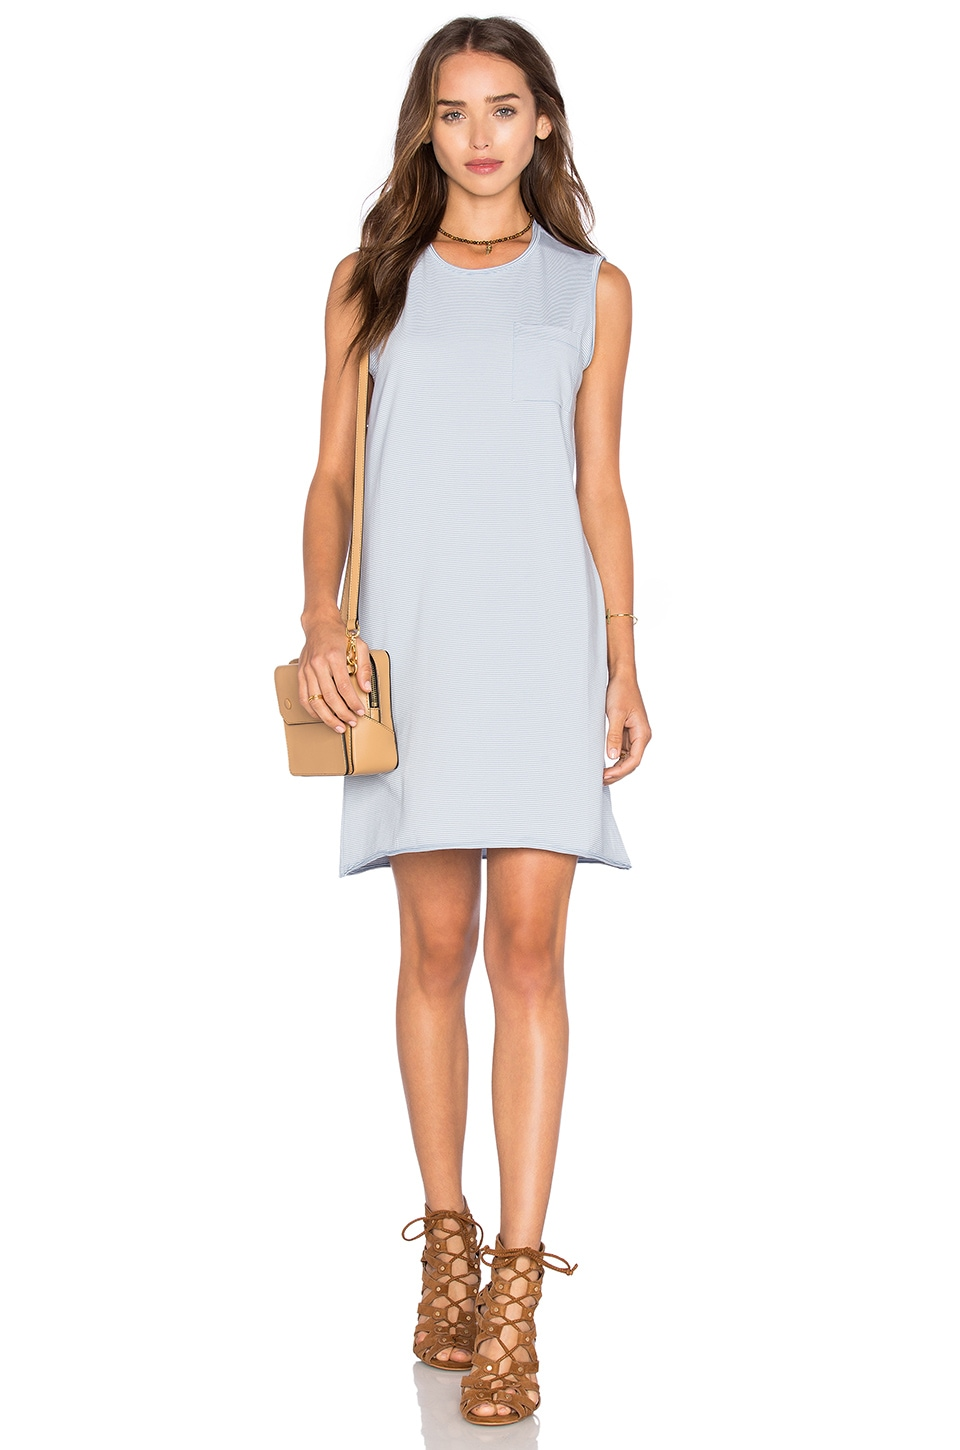 ATM Anthony Thomas Melillo Pocket Tank Dress in Powder Blue & White